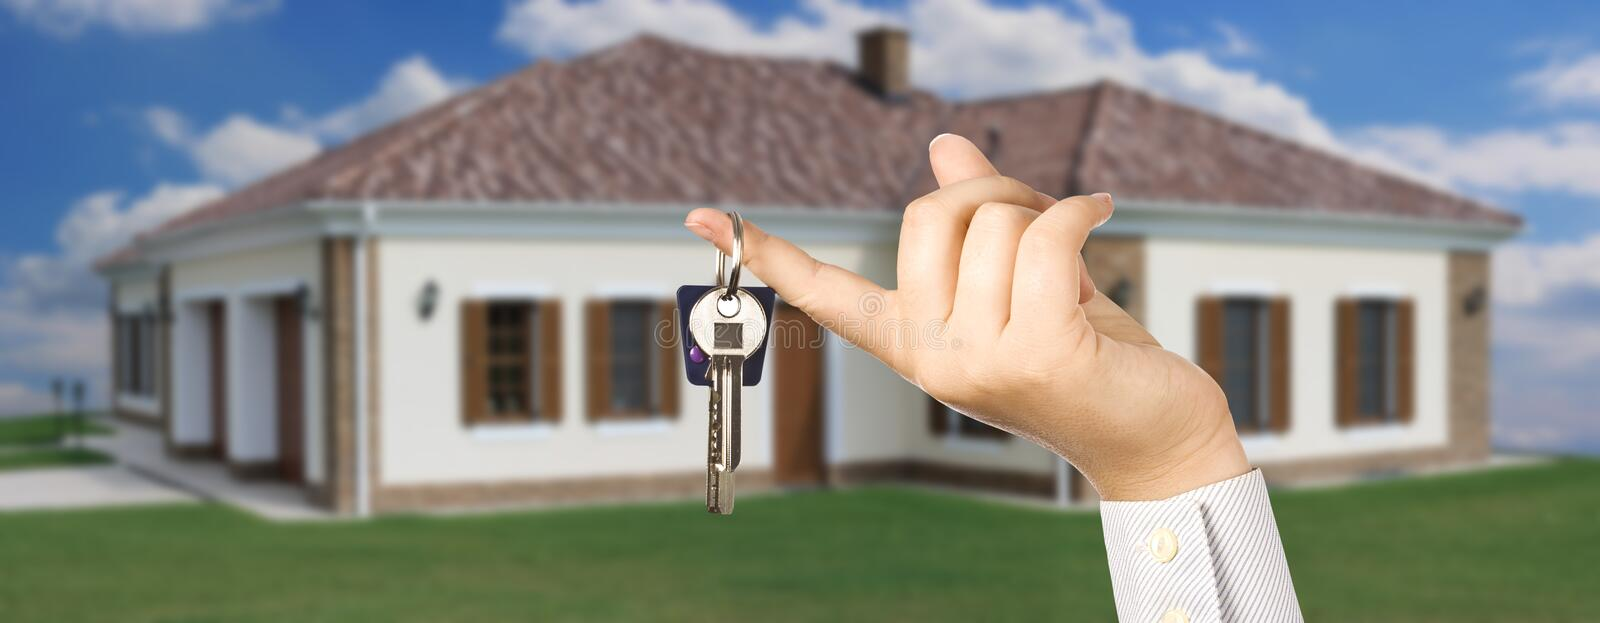 House key. Woman holding a key for a house on a keychain, house in background stock photos